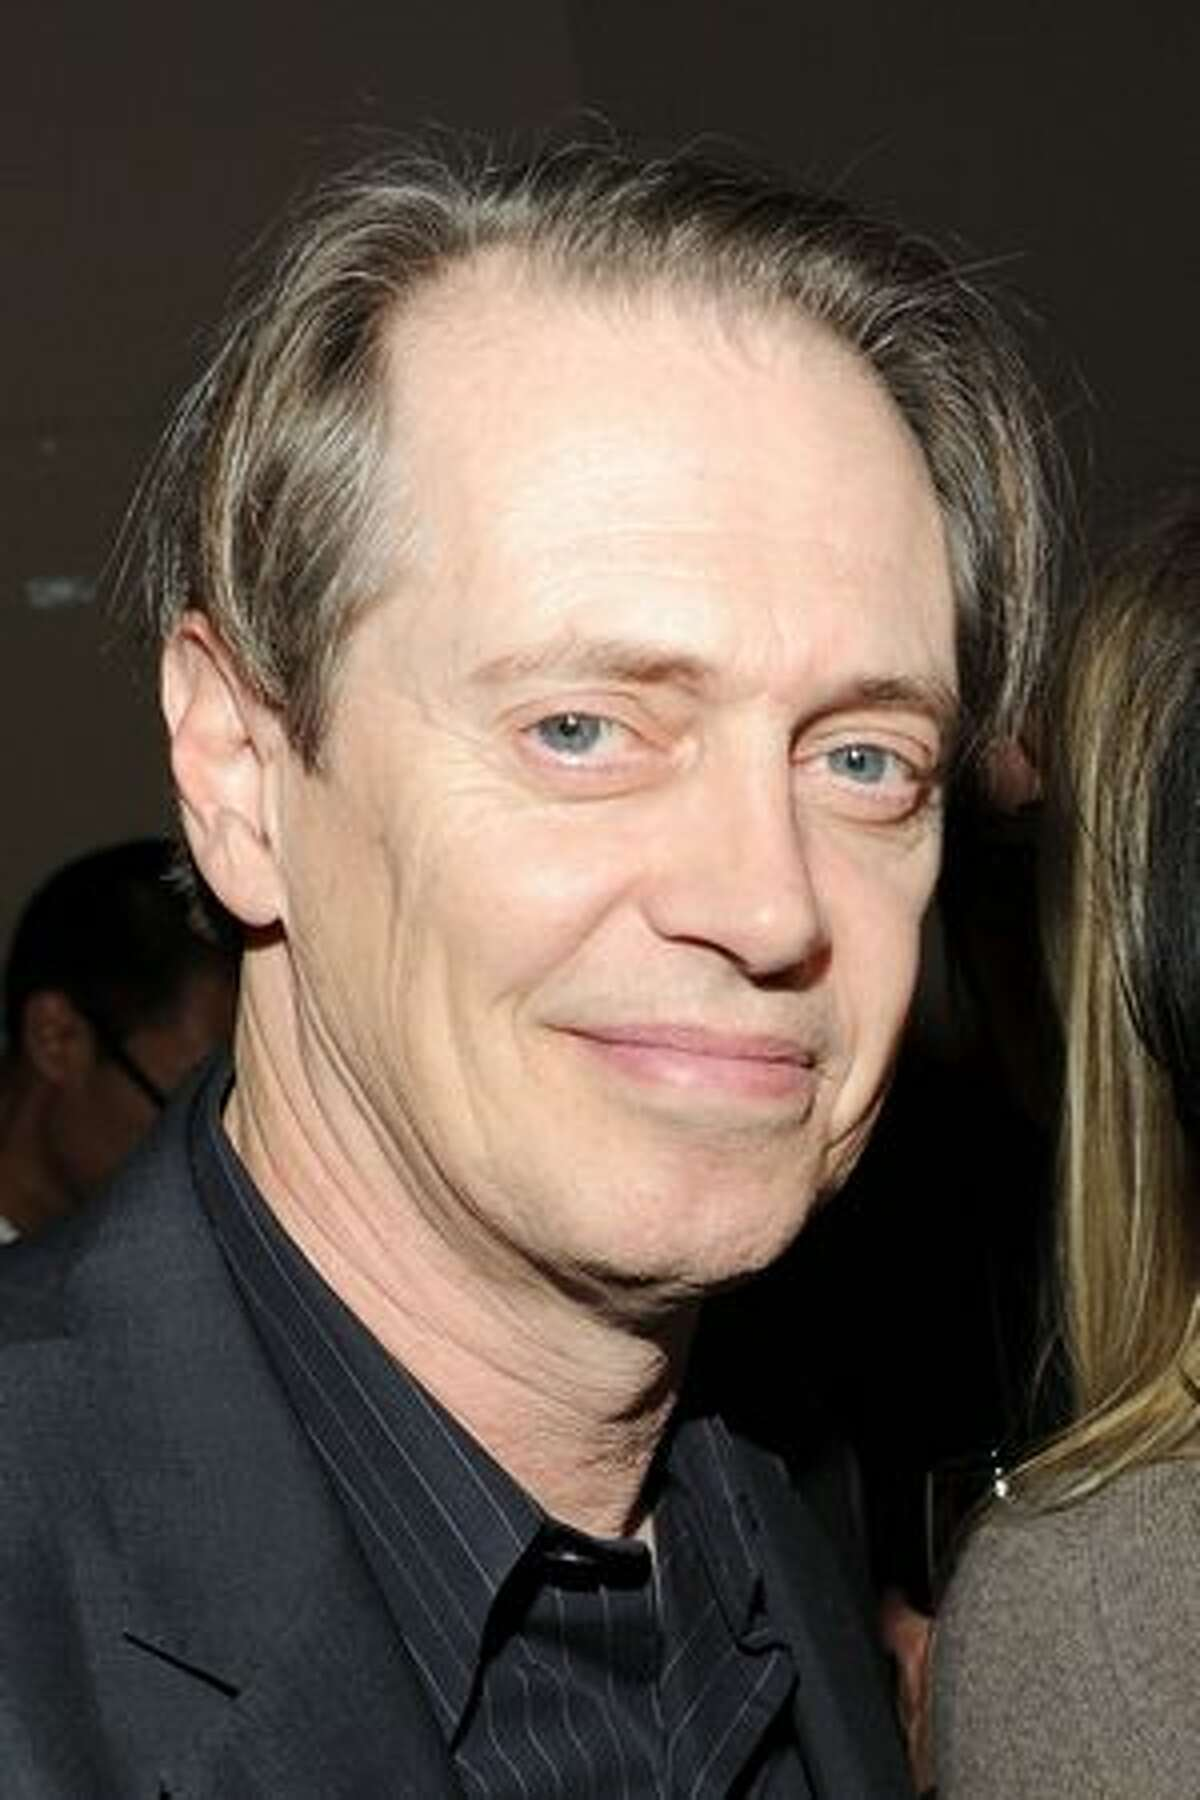 Actor Steve Buscemi attends IFP's 20th Annual Gotham Independent Film Awards in New York City.